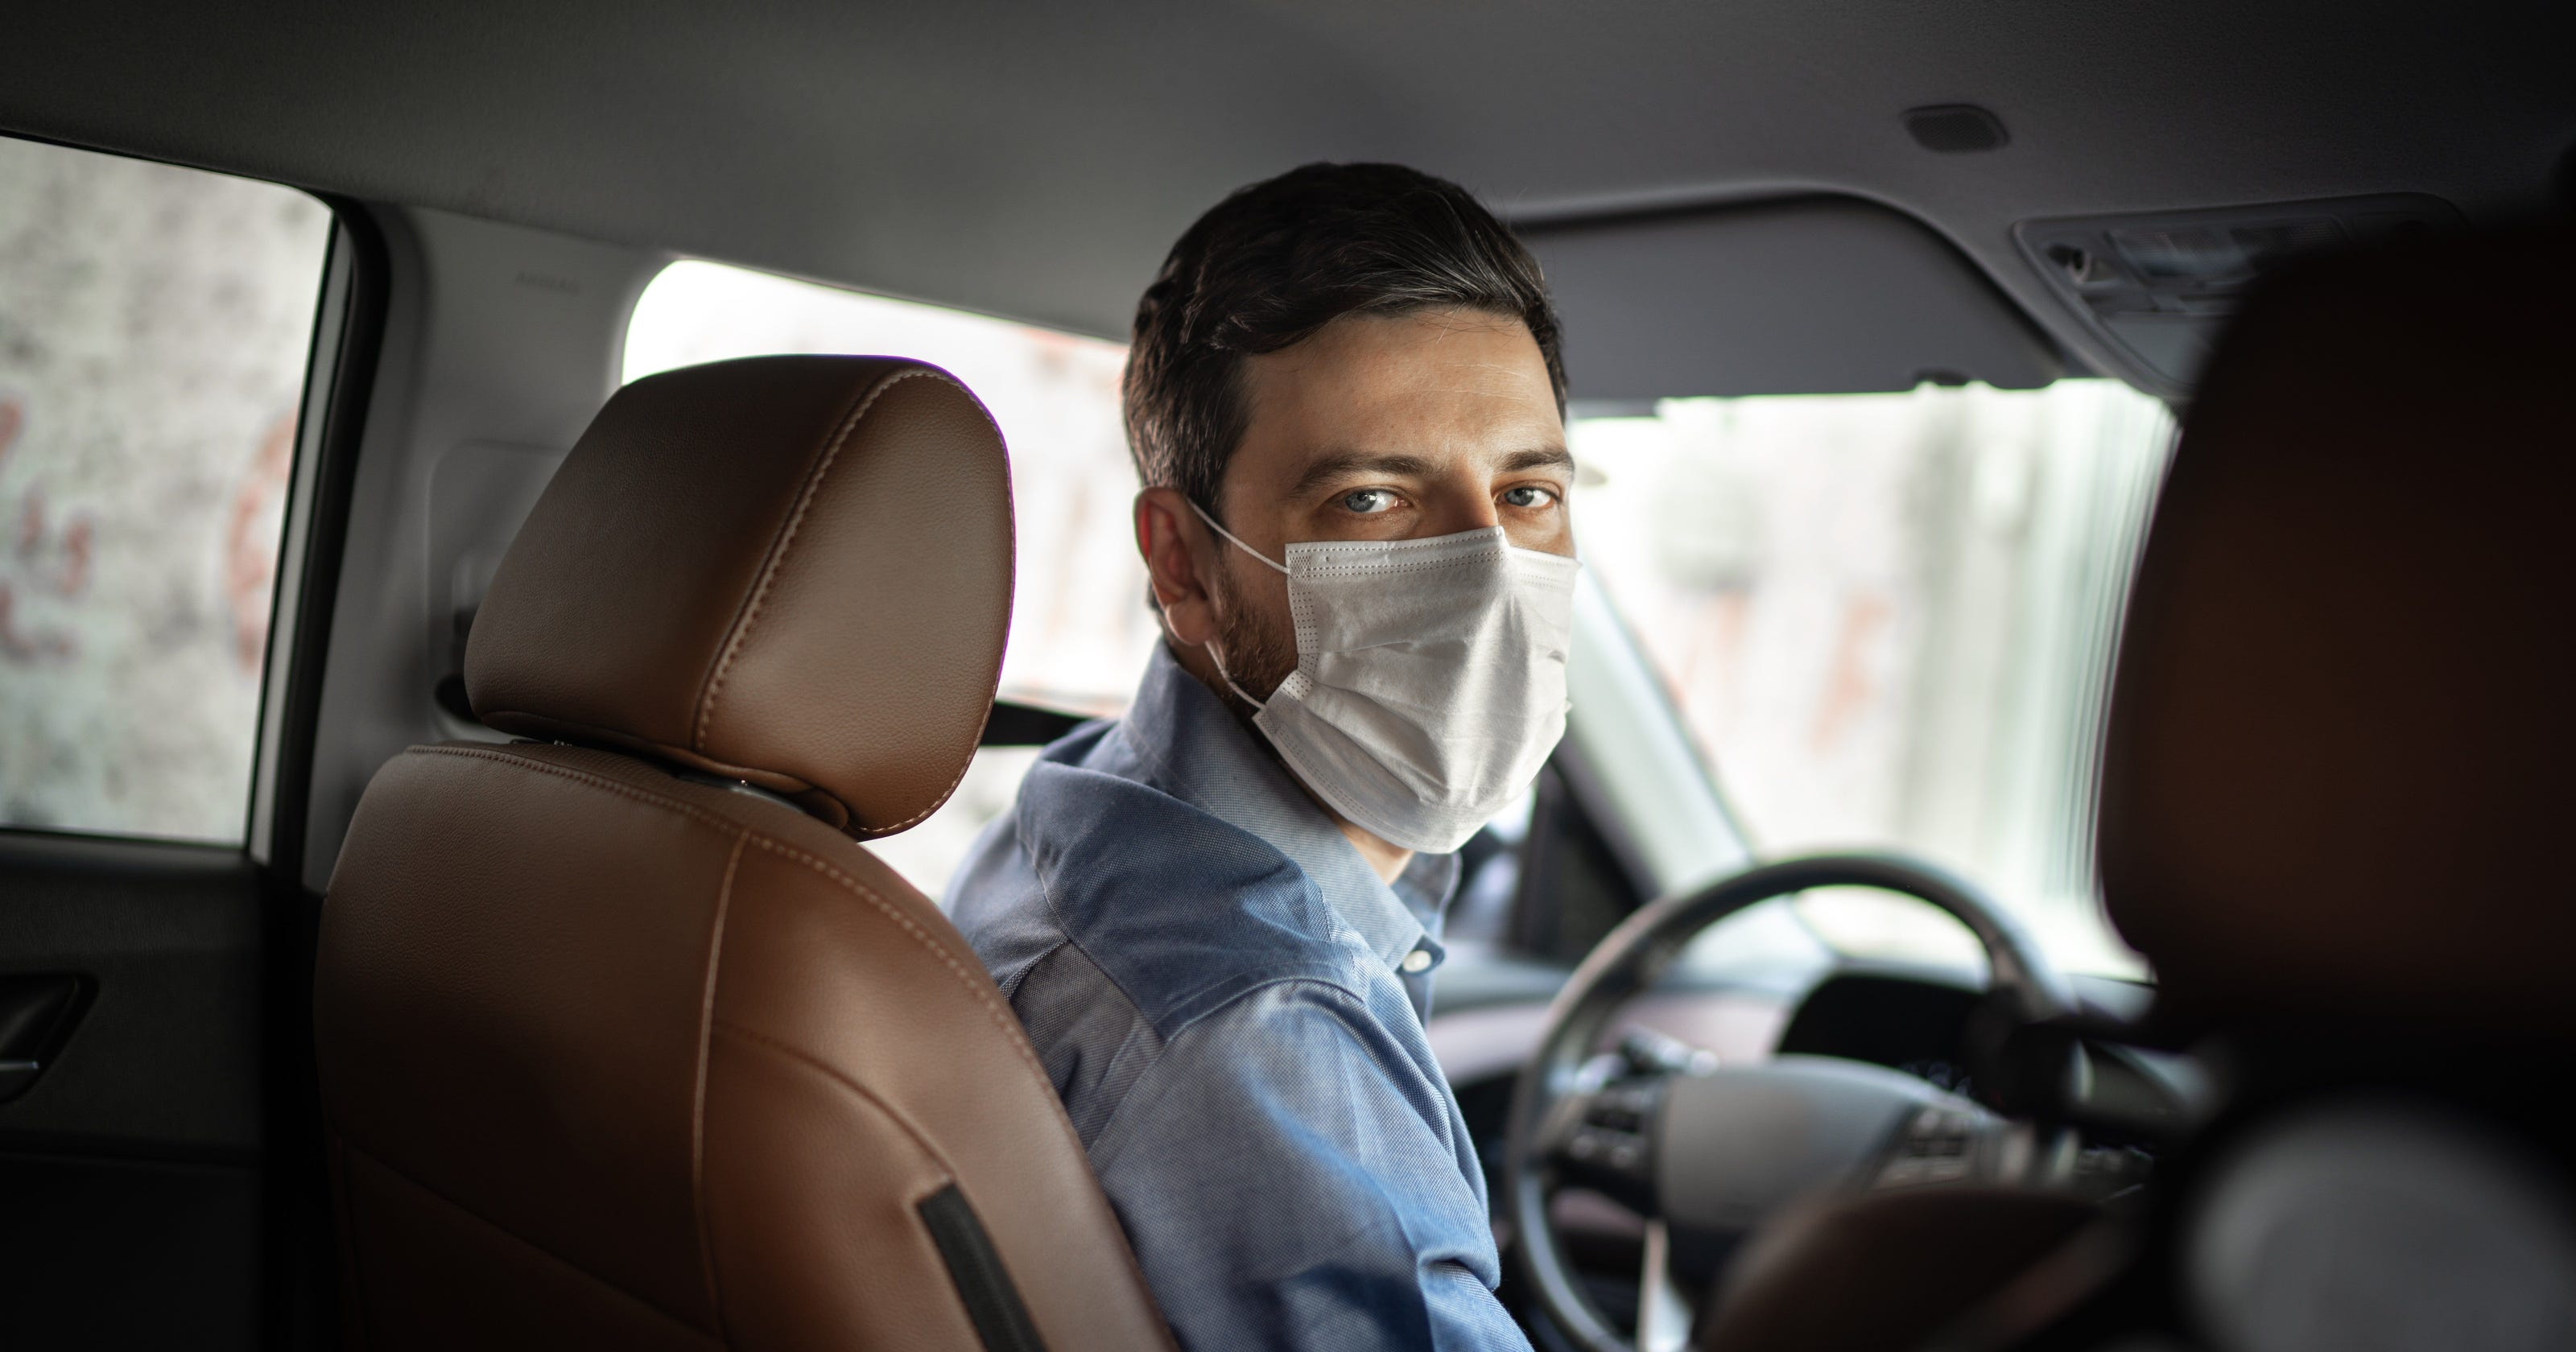 Uber to require face masks for drivers, riders